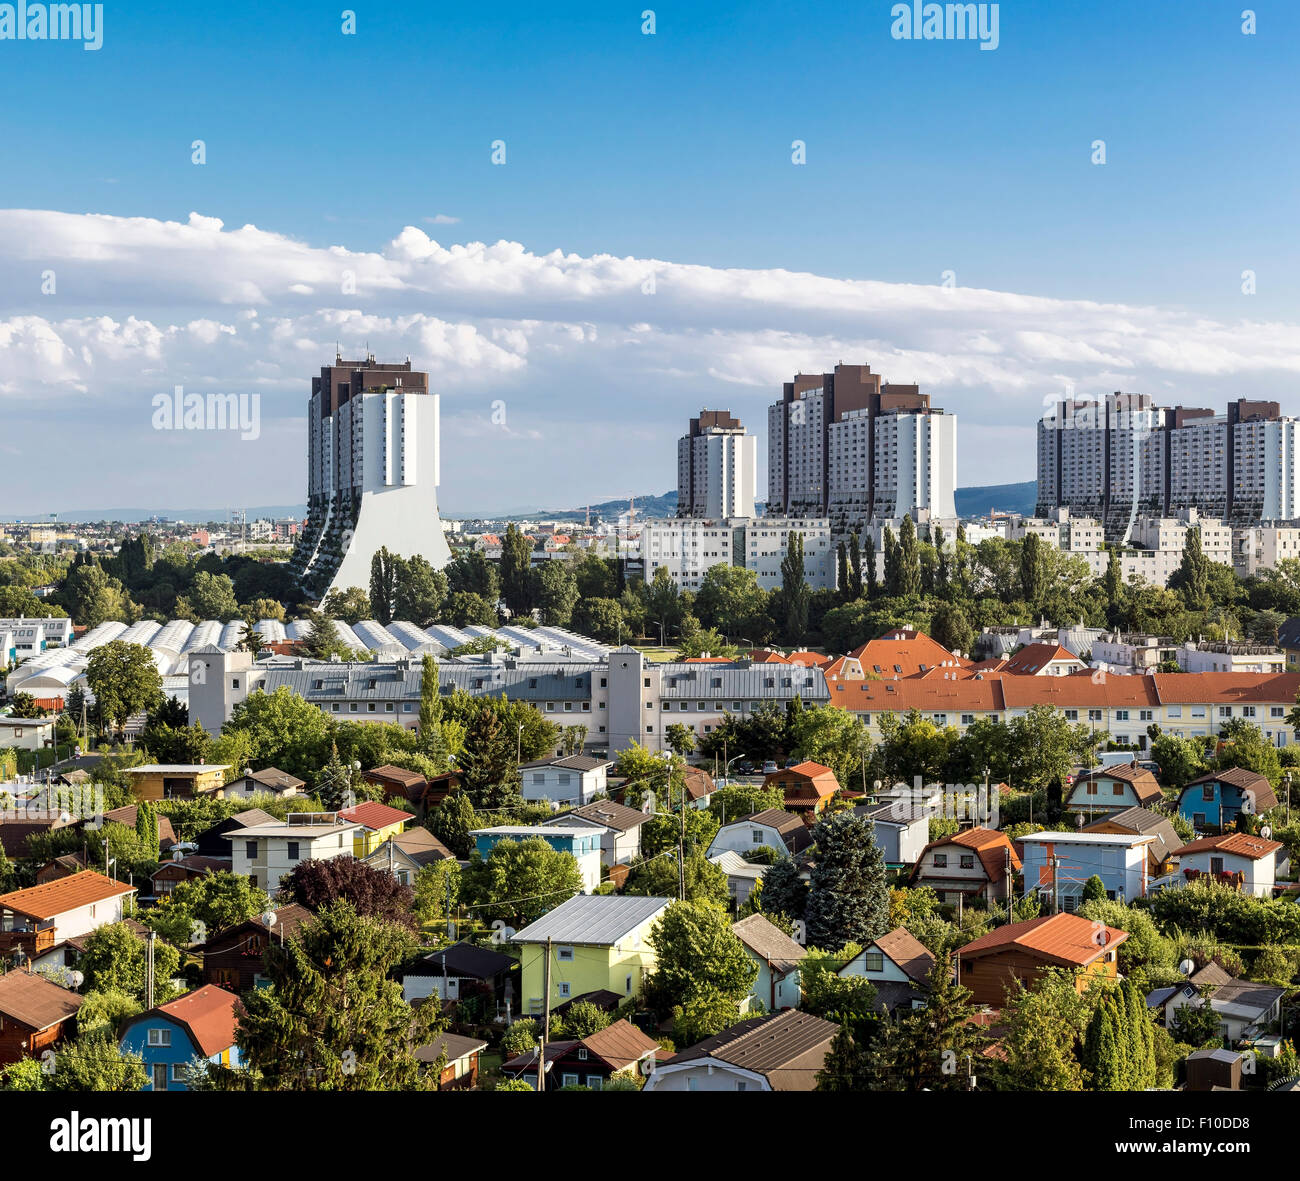 The residential complexes Alt-Erlaa of the city of Vienna - Stock Image